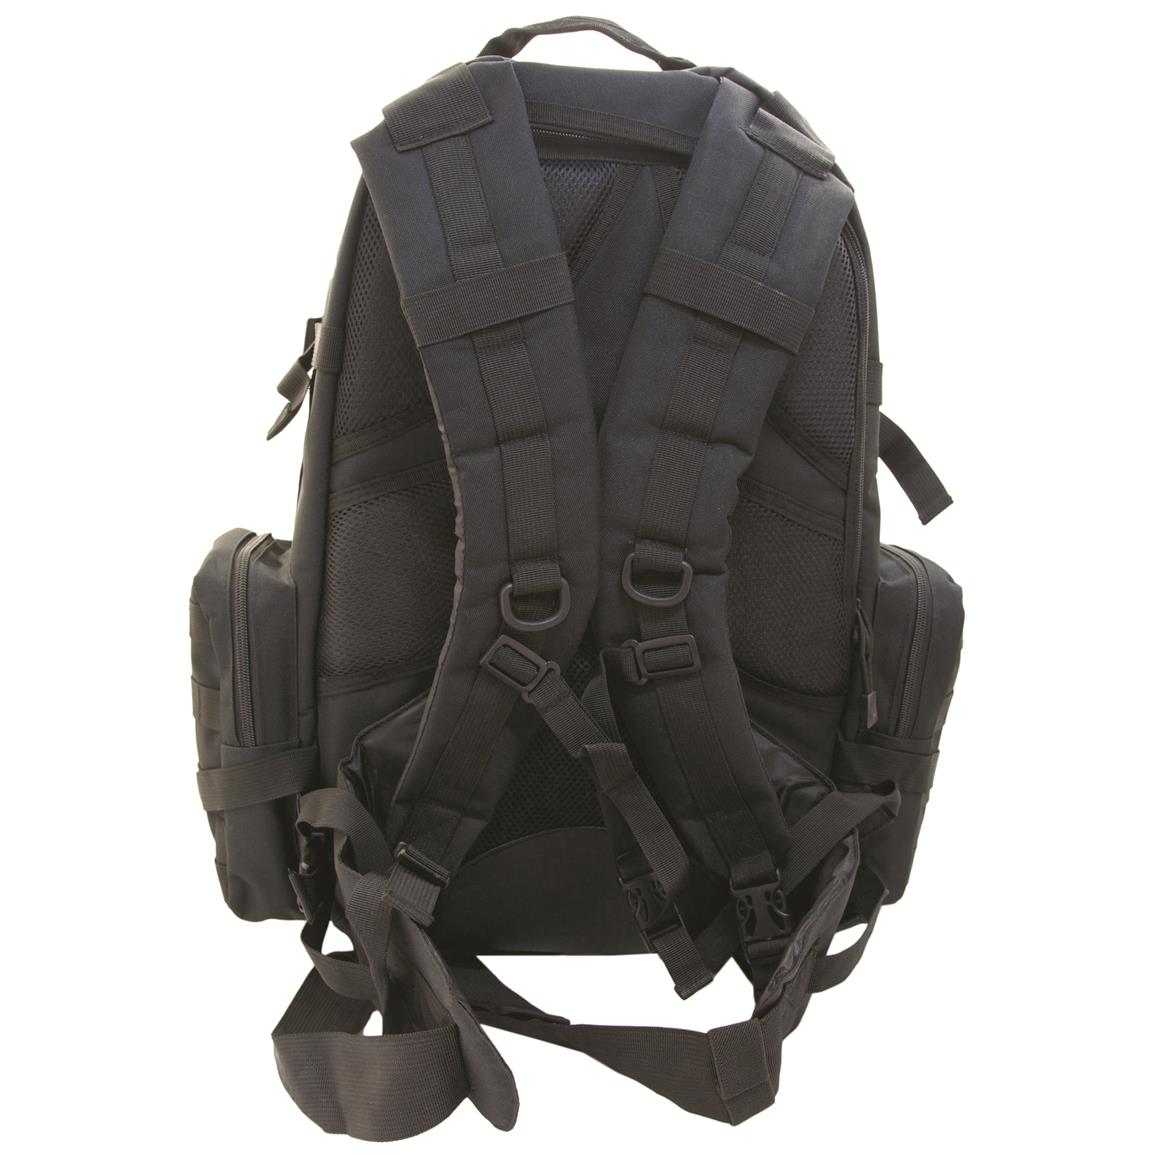 Humvee 3-Day Assault Backpack, Black, Back